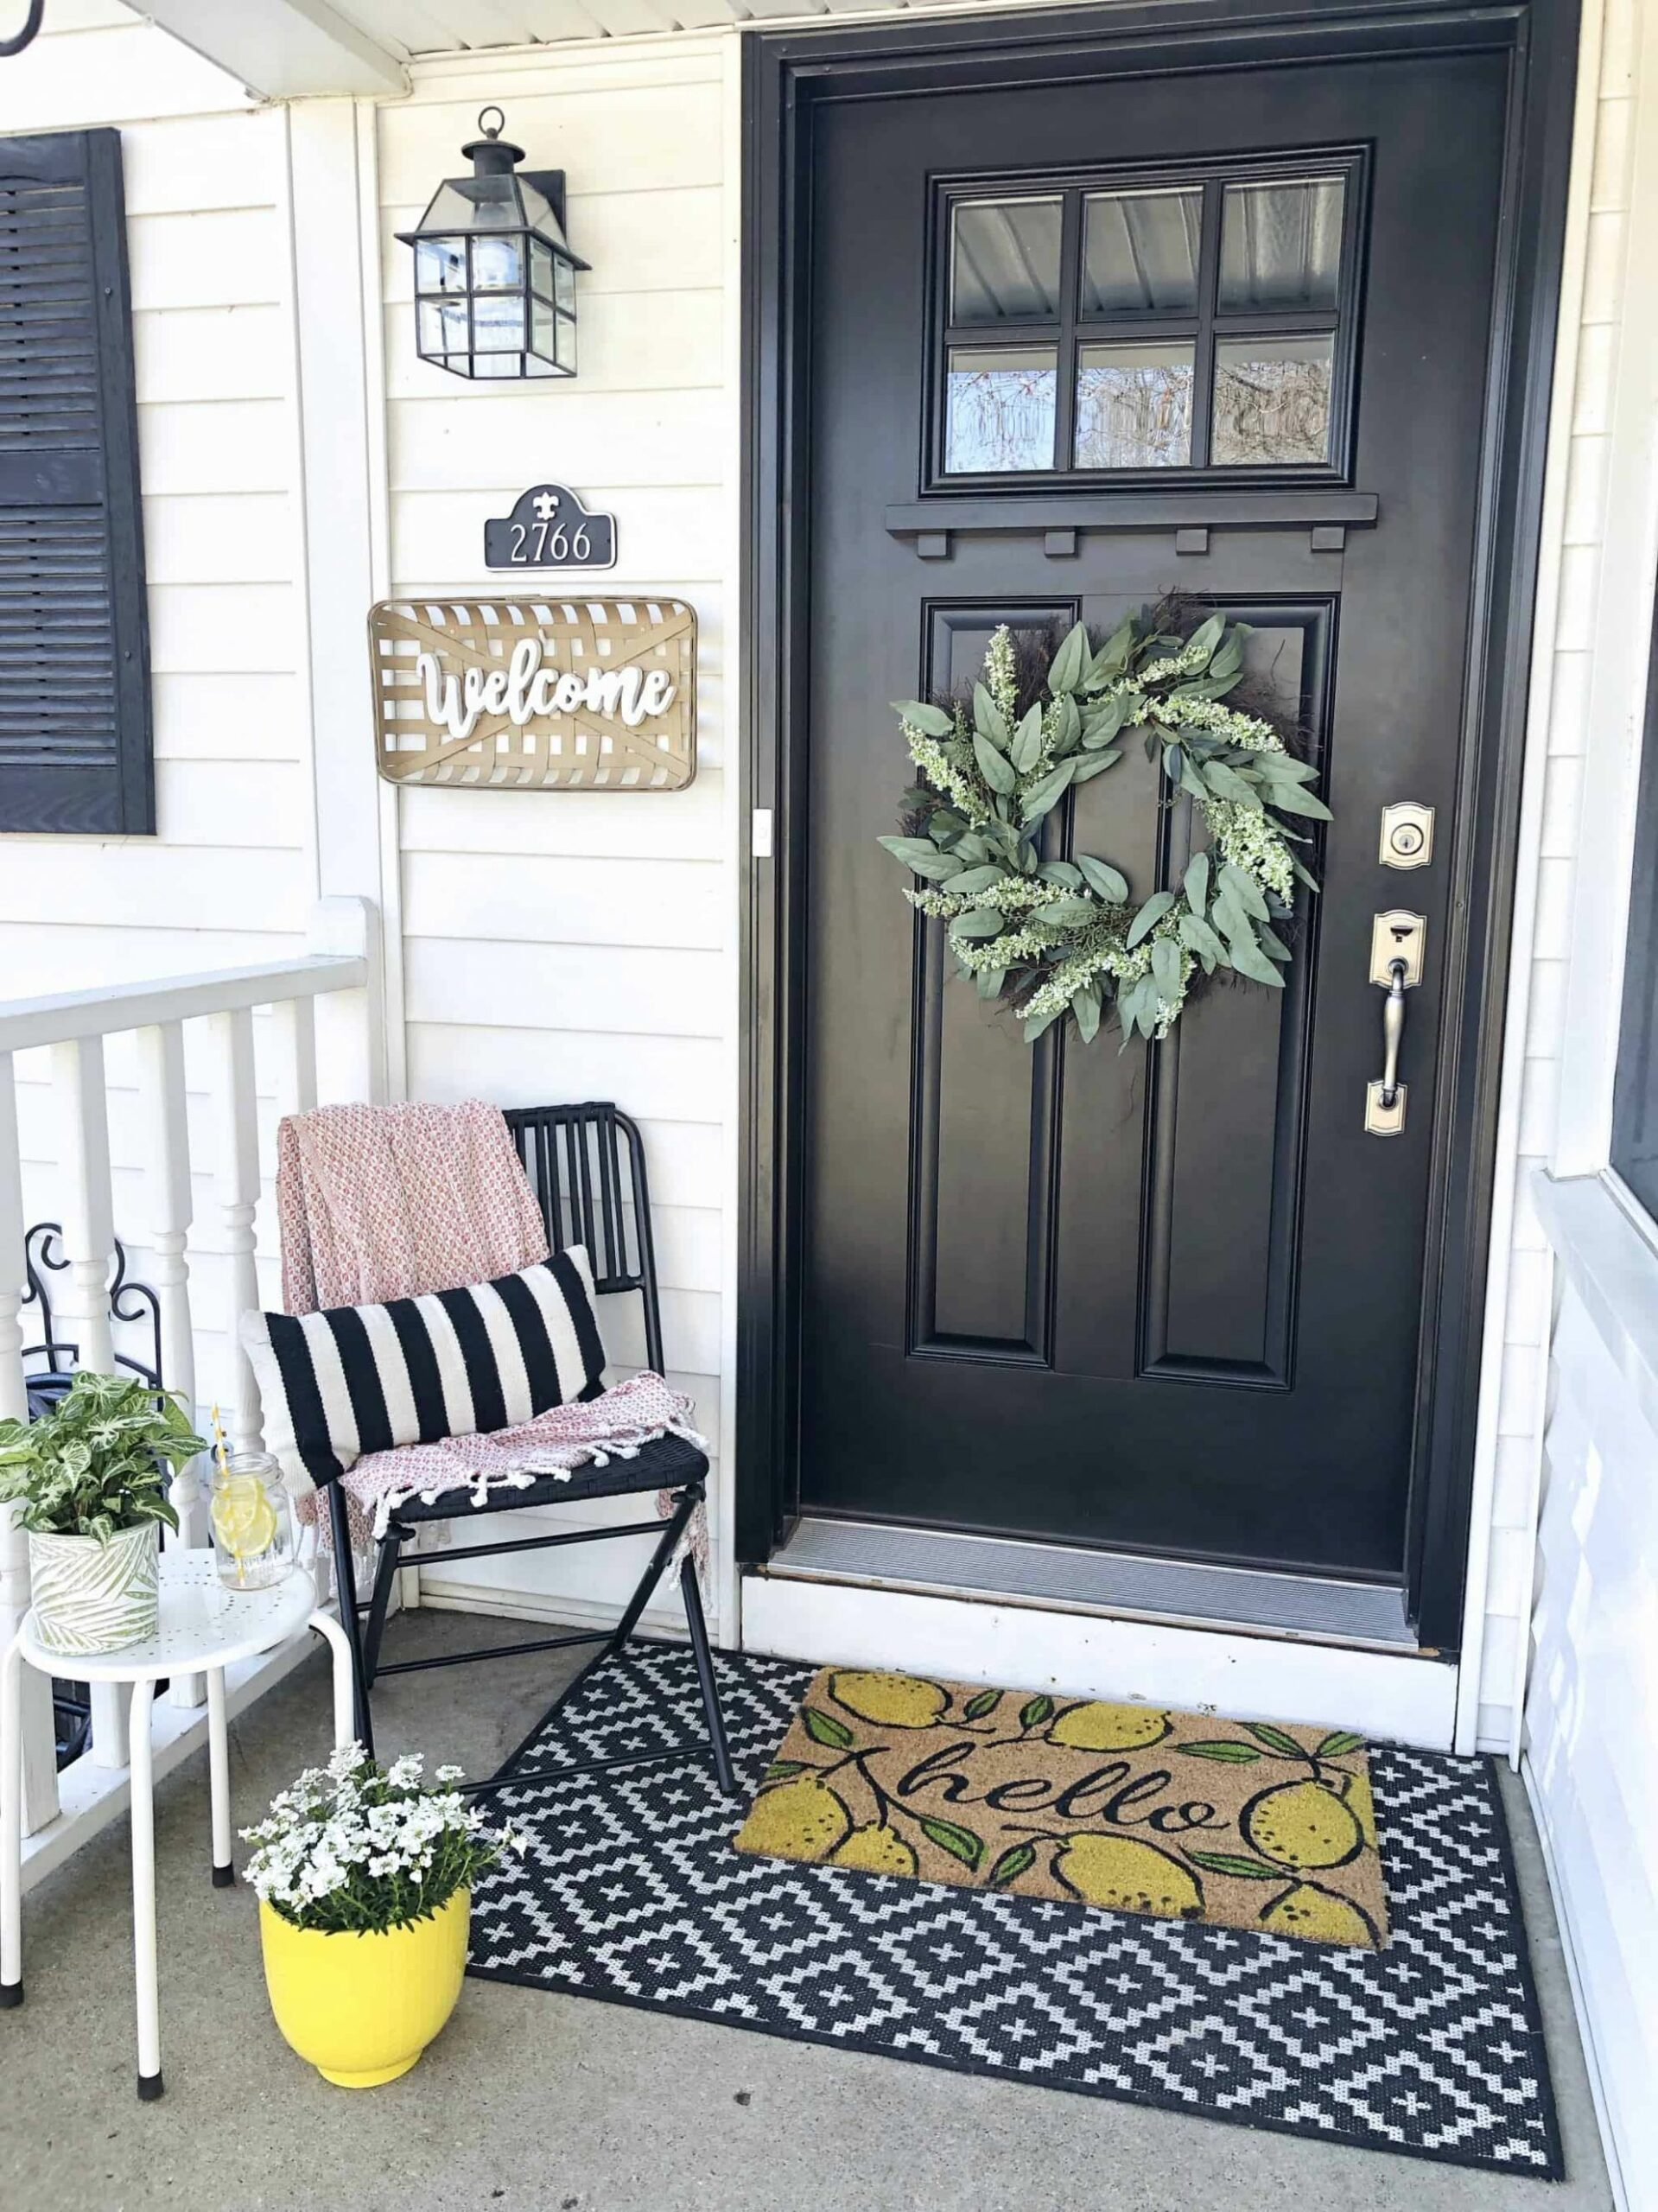 Spring Small Front Porch Decor: 12 Budget Friendly Decorating Ideas ..